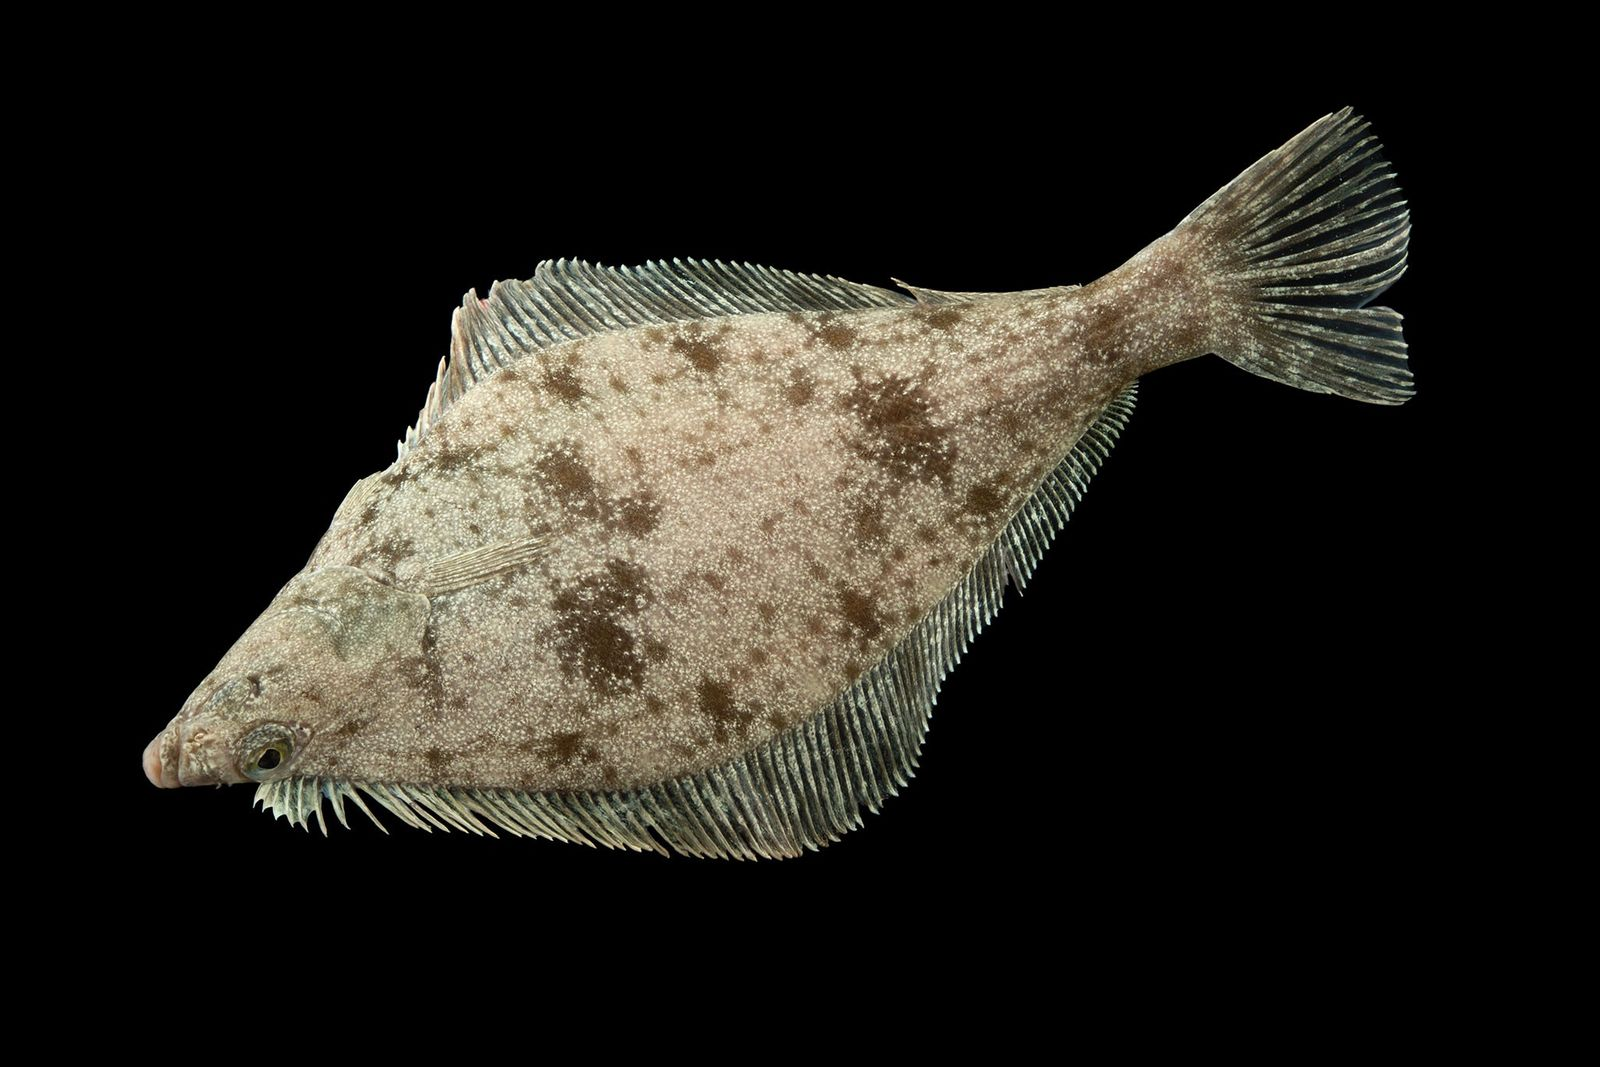 These Freaky Fish Use Their Fins To 'Walk' Across The Seafloor